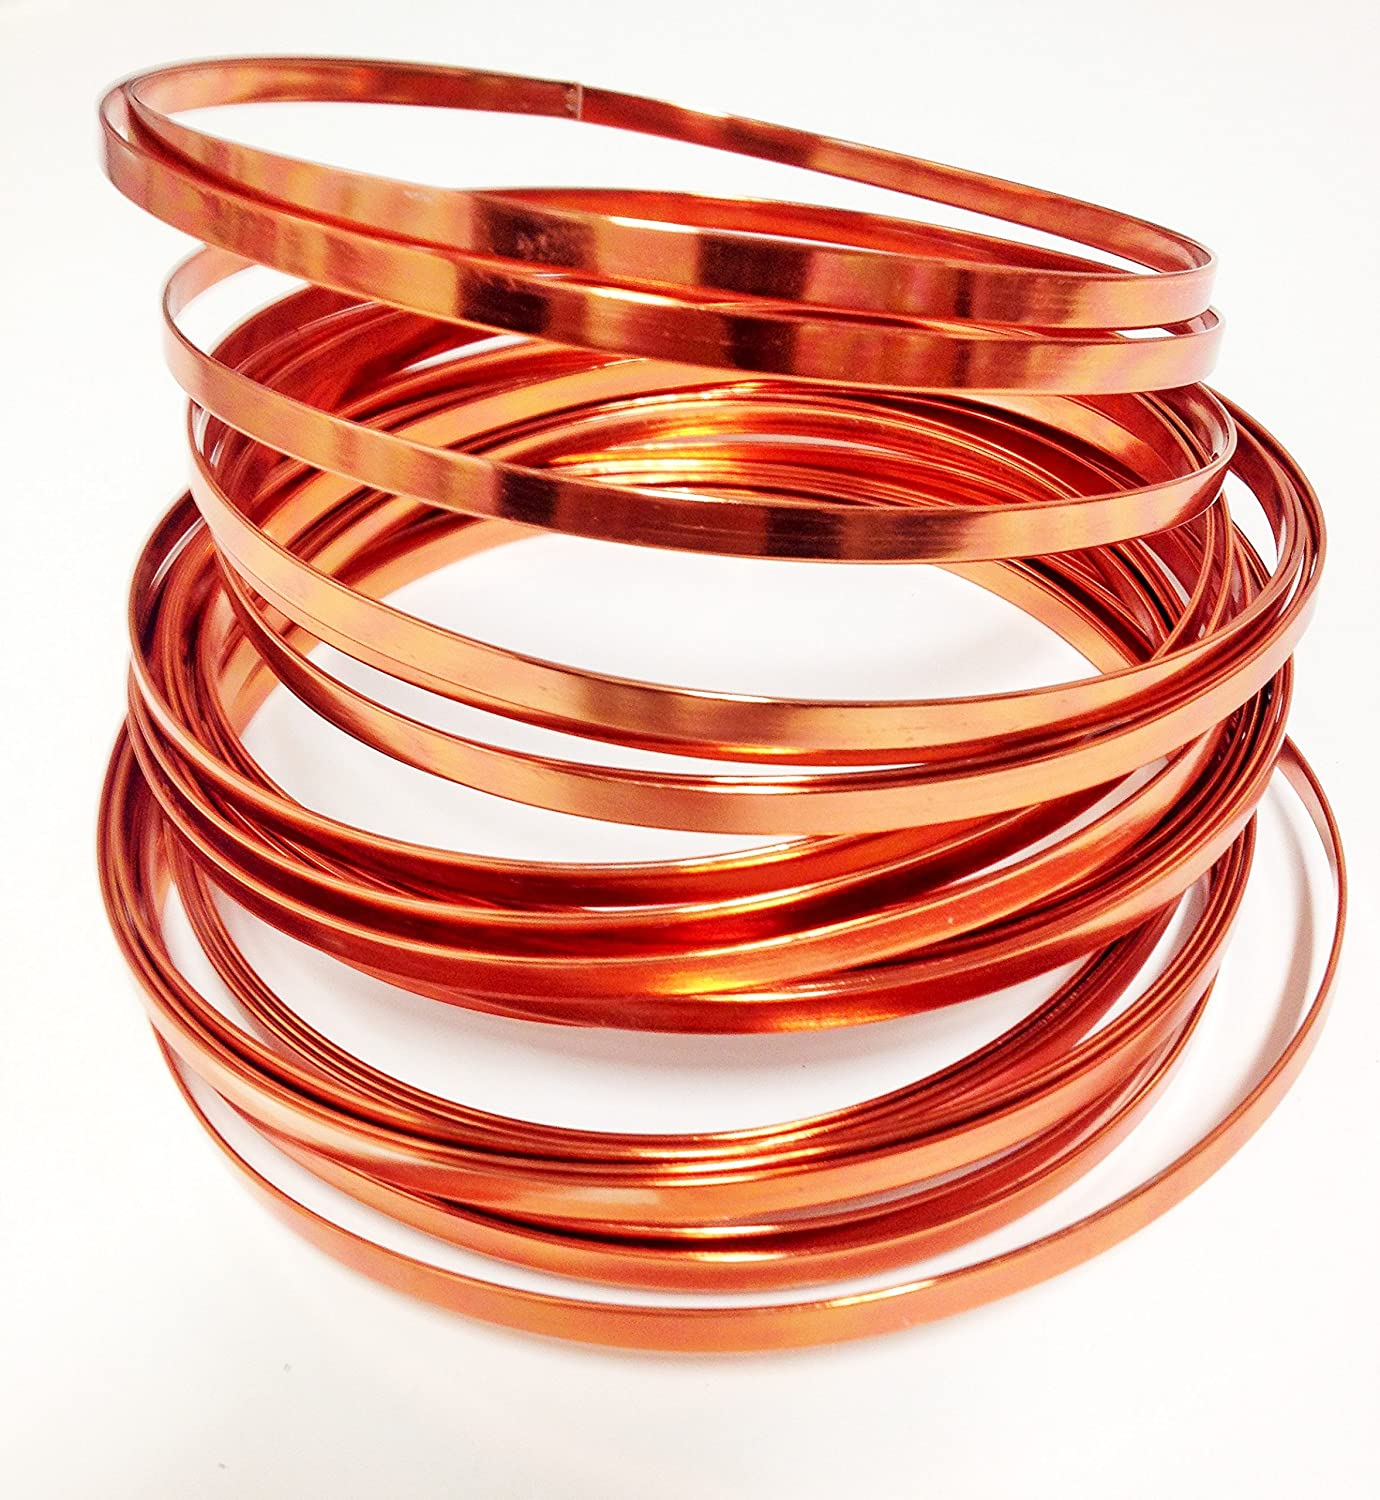 Amazon Com Flat Aluminum Wire 32ft L X 3 16in W Copper Arts Crafts Sewing